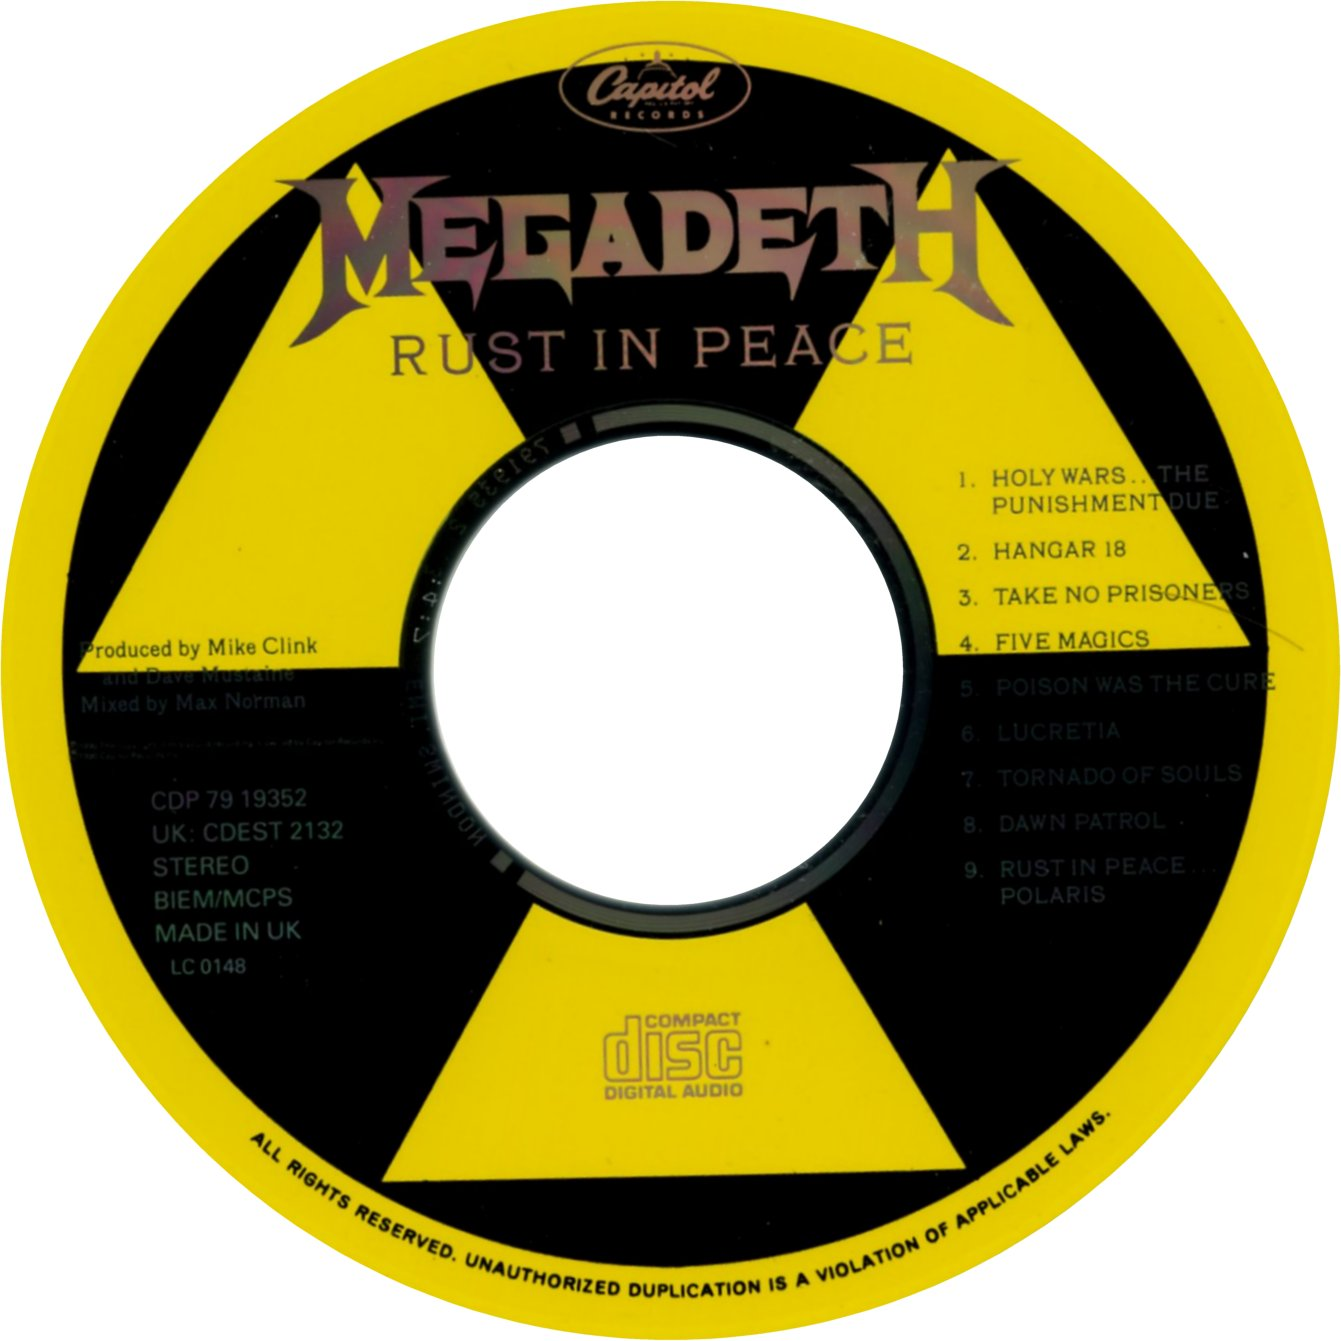 Megadeth Rust In Peace Cd Cover has been resized